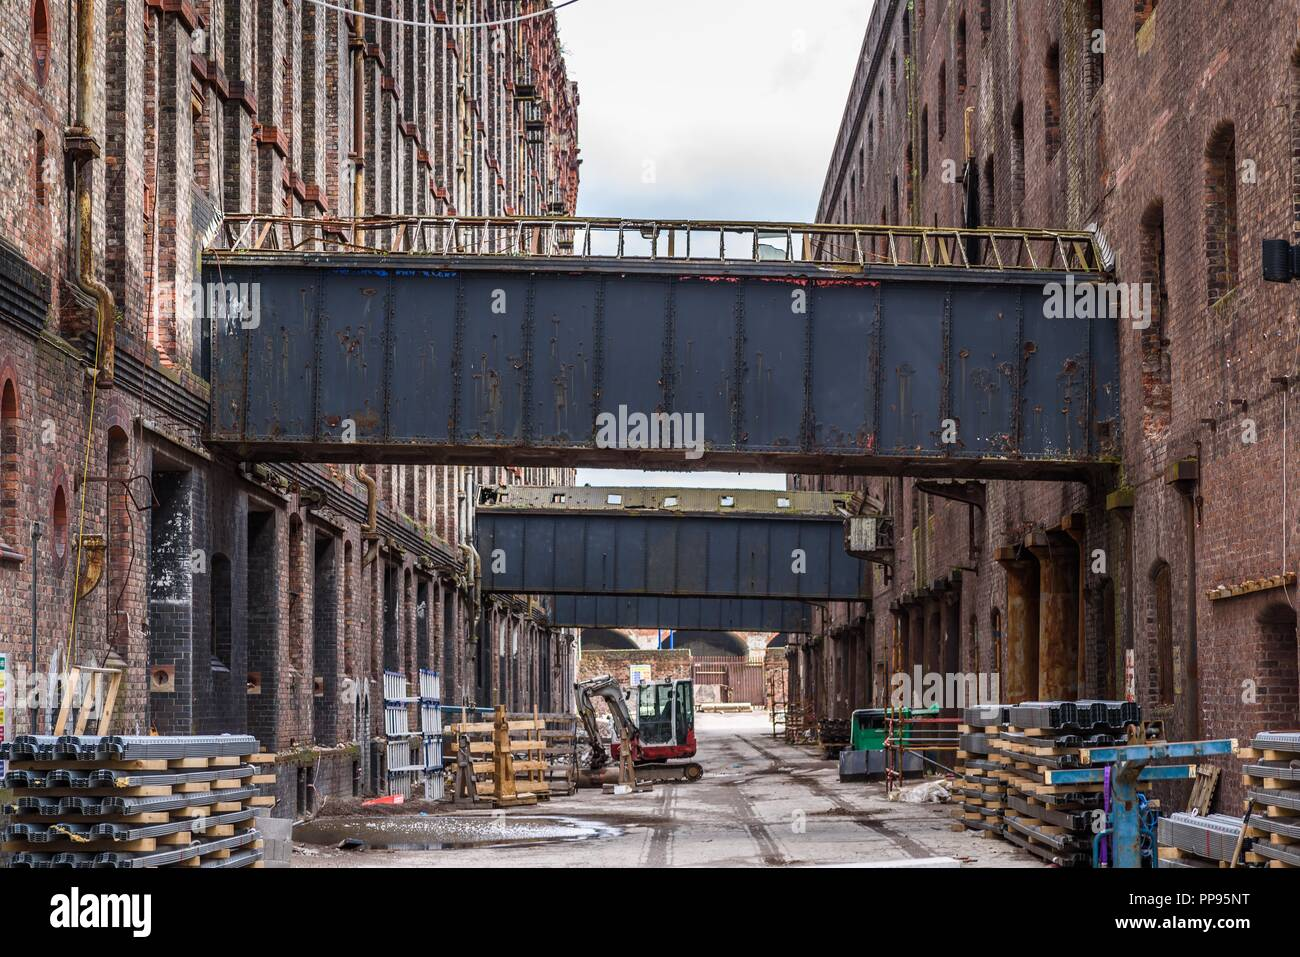 Renovation work on the Stanley Dock Tobacco Warehouse (1901) Regent Road, Liverpool, Merseyside, England, UK April 2018. Stock Photo